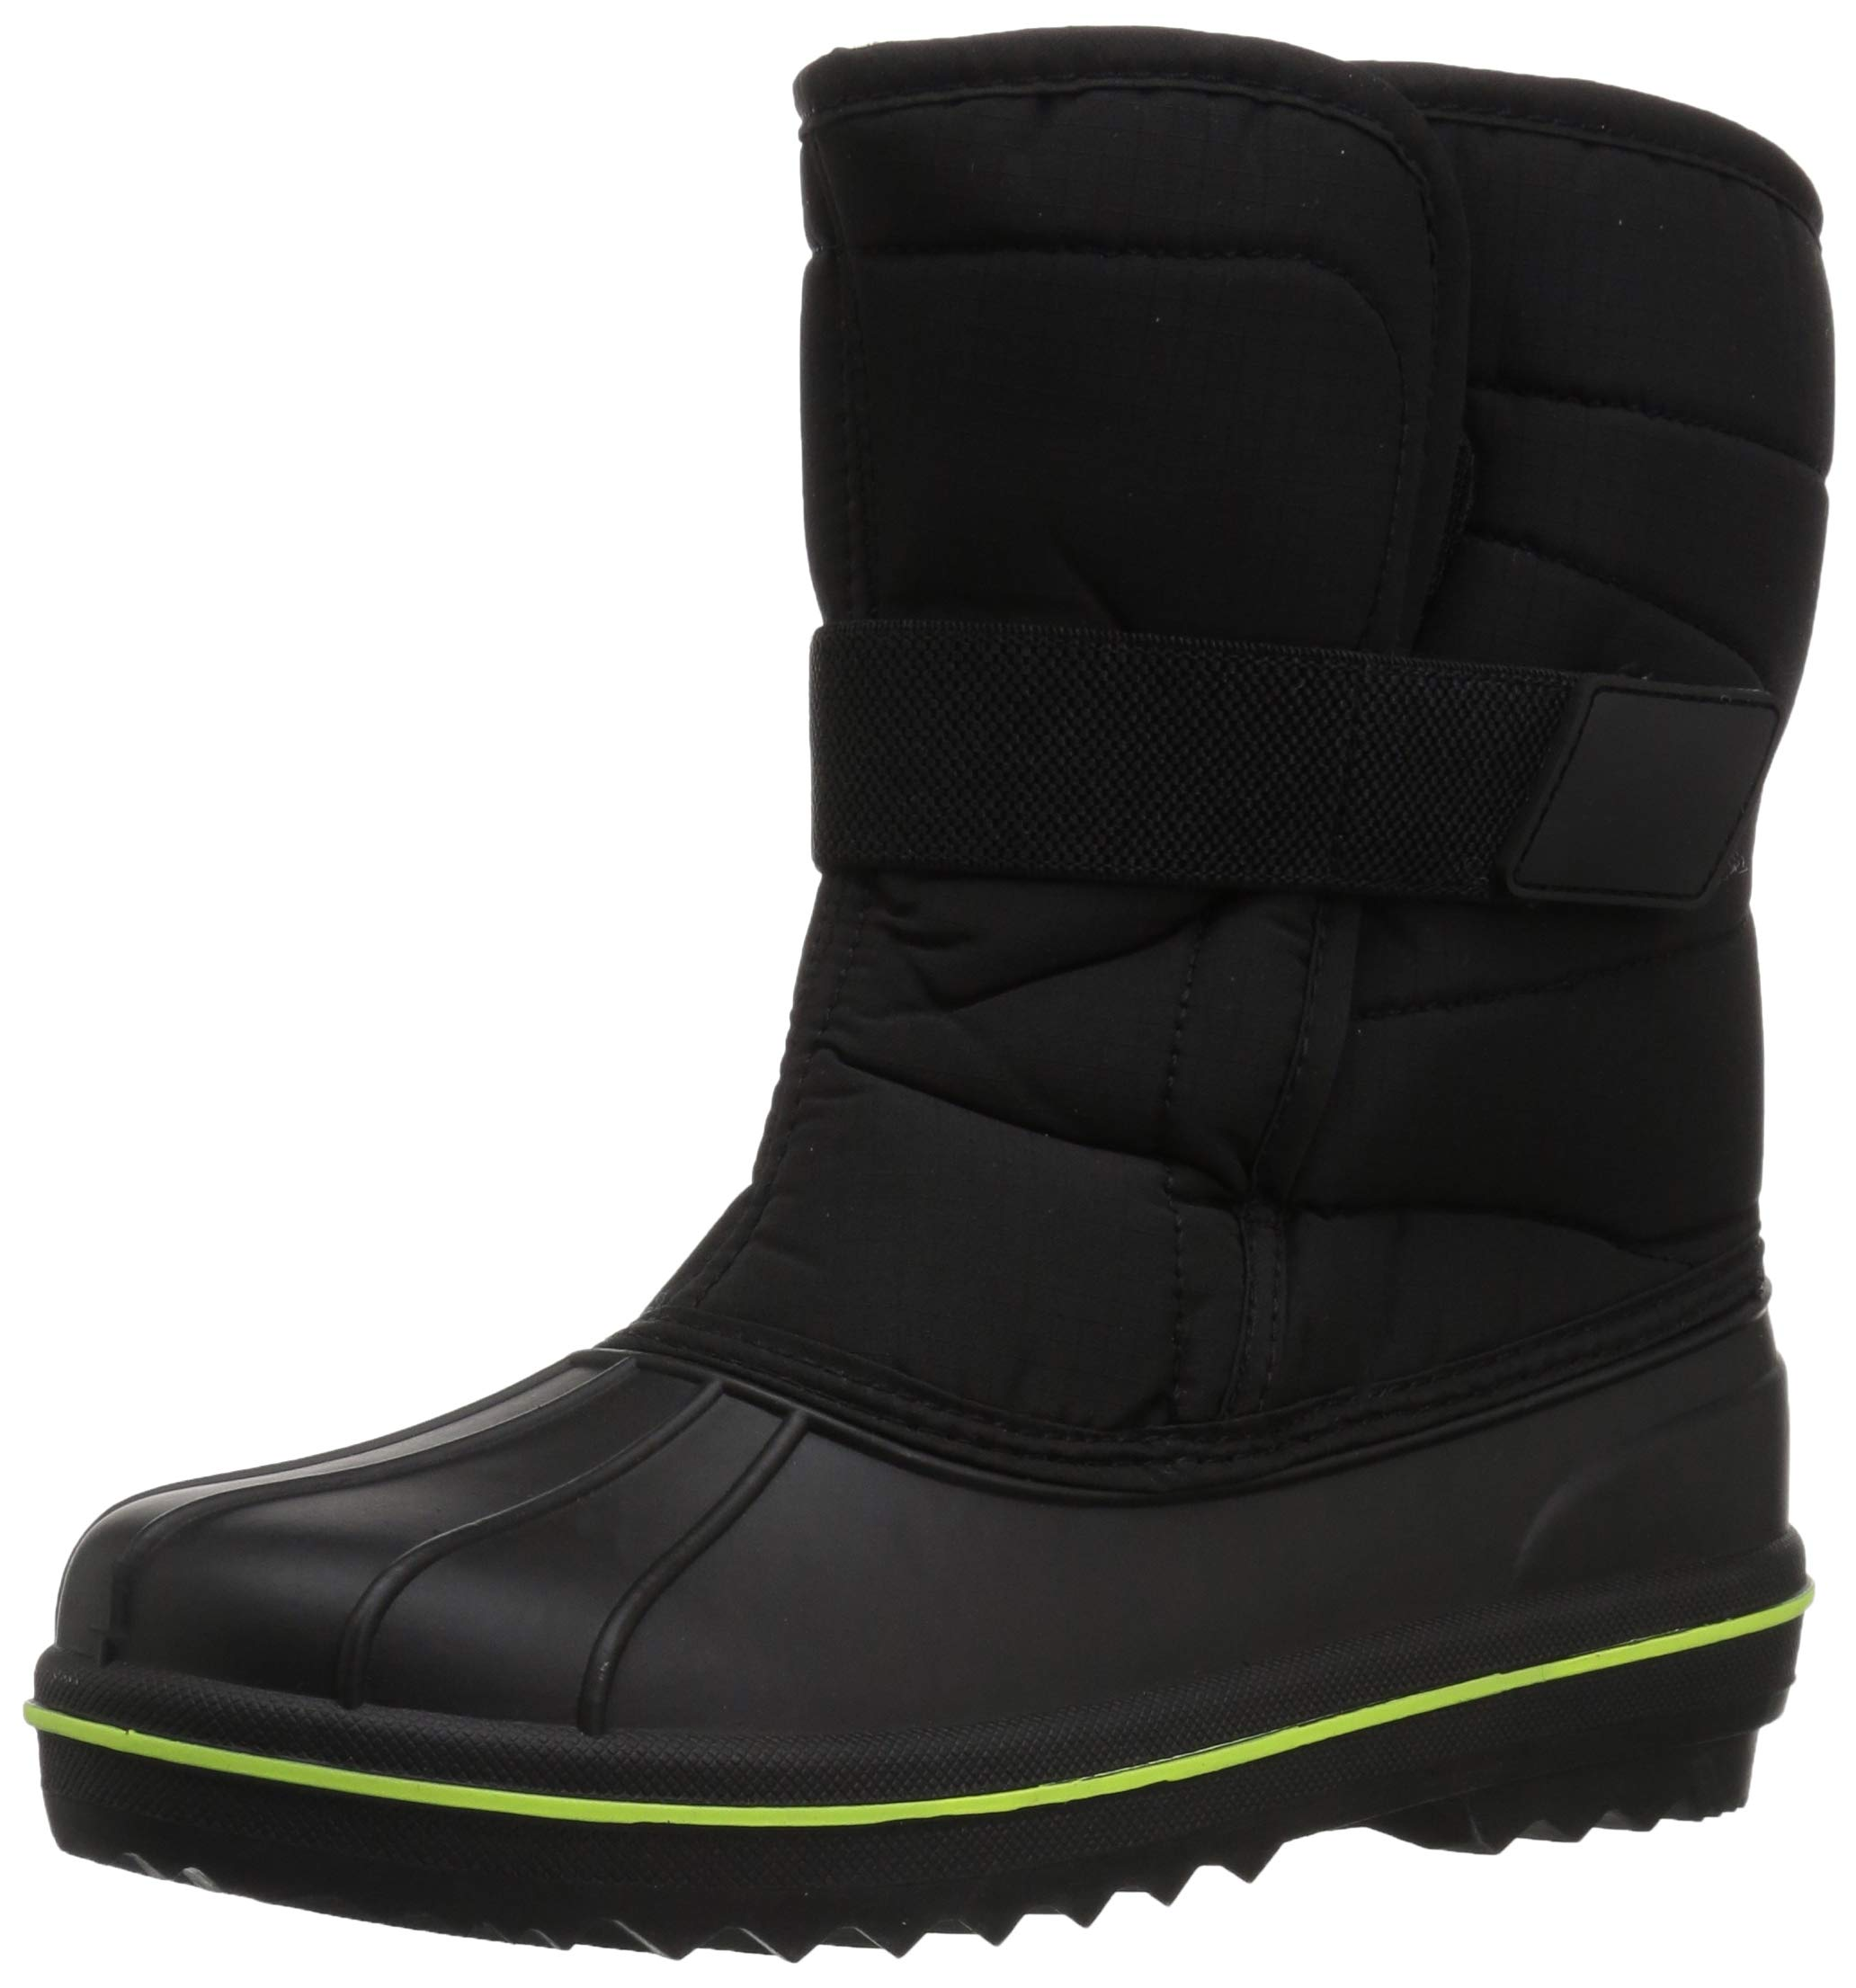 The Children's Place Boys Snow Boot, Black, TDDLR 10 Child US Toddler